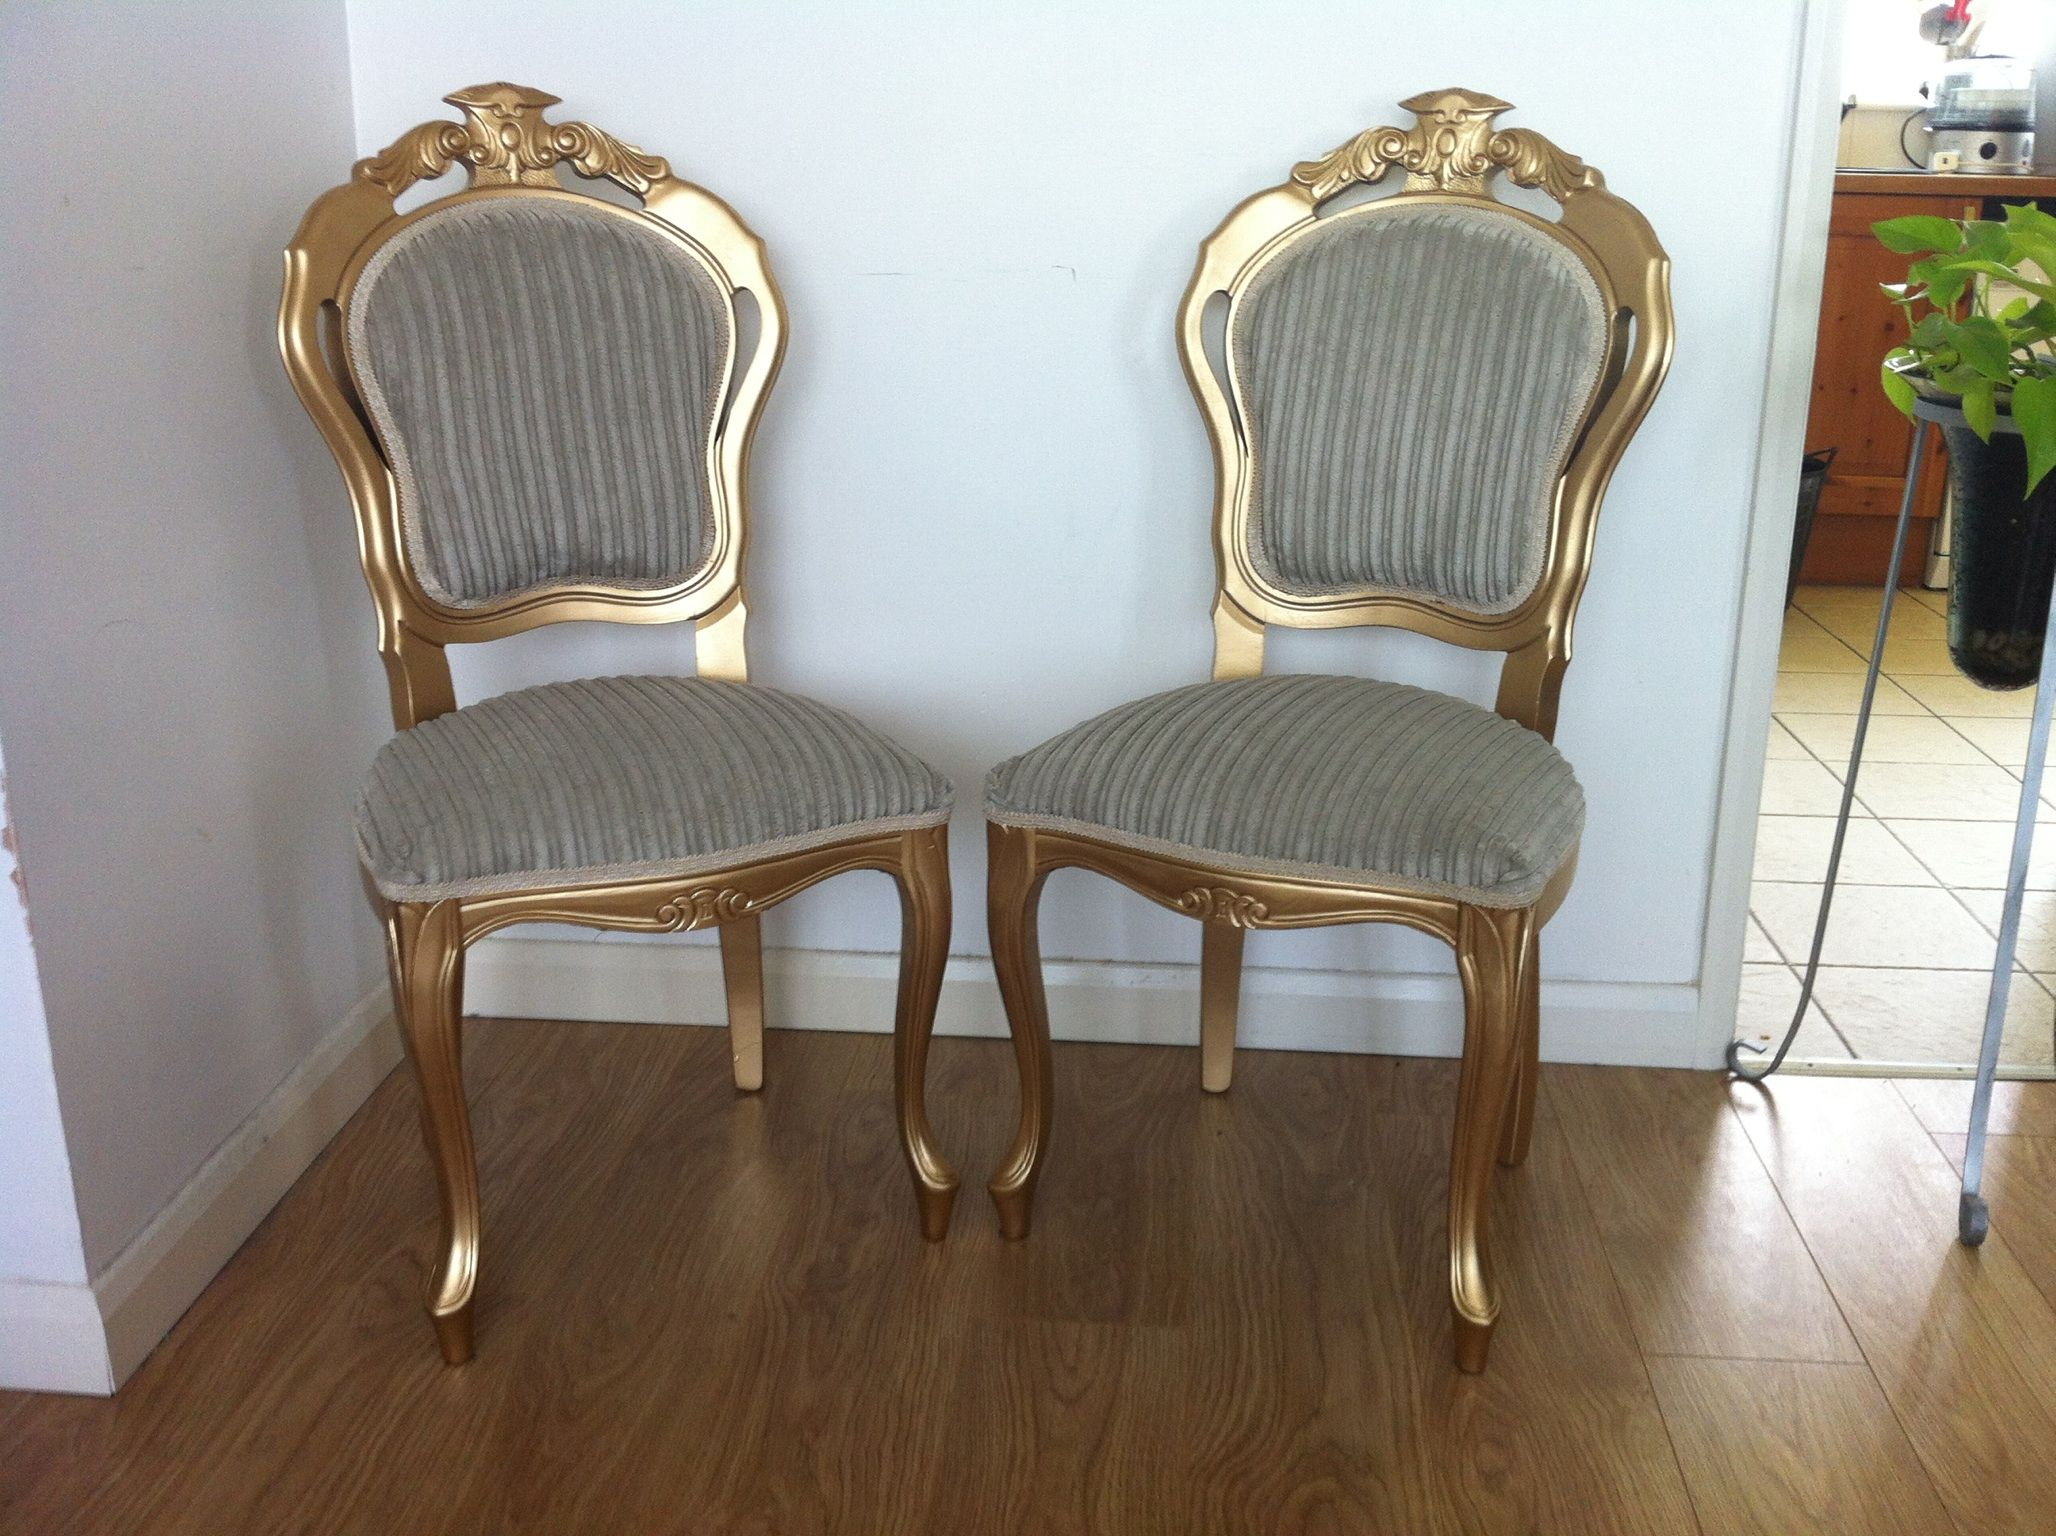 2 shimmery gold french/italian dining chairs with stone (very